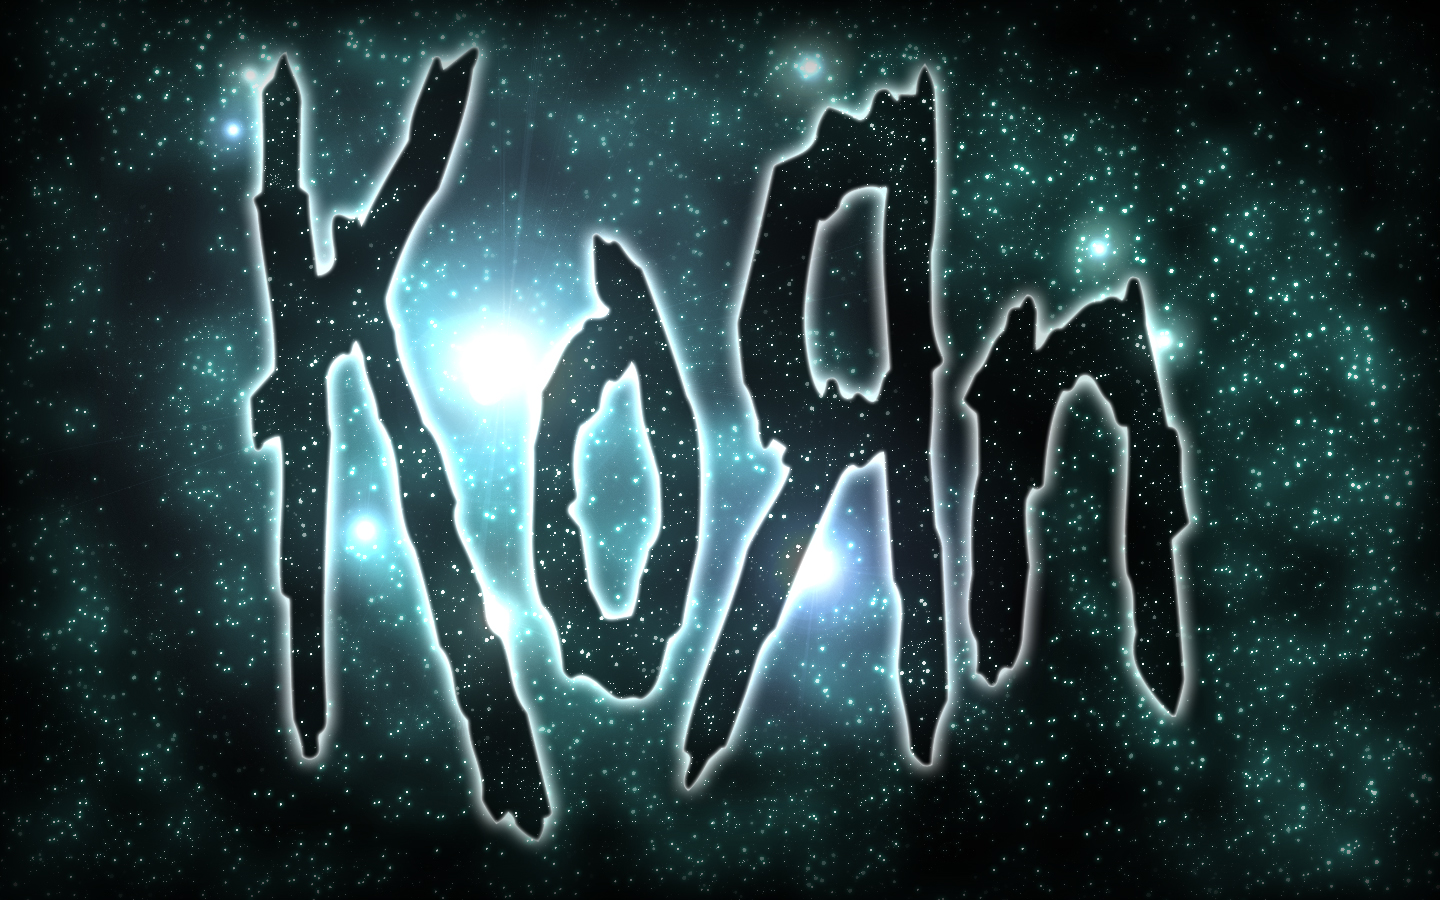 1000+ images about KORN on Pinterest | Logos, Desktop backgrounds